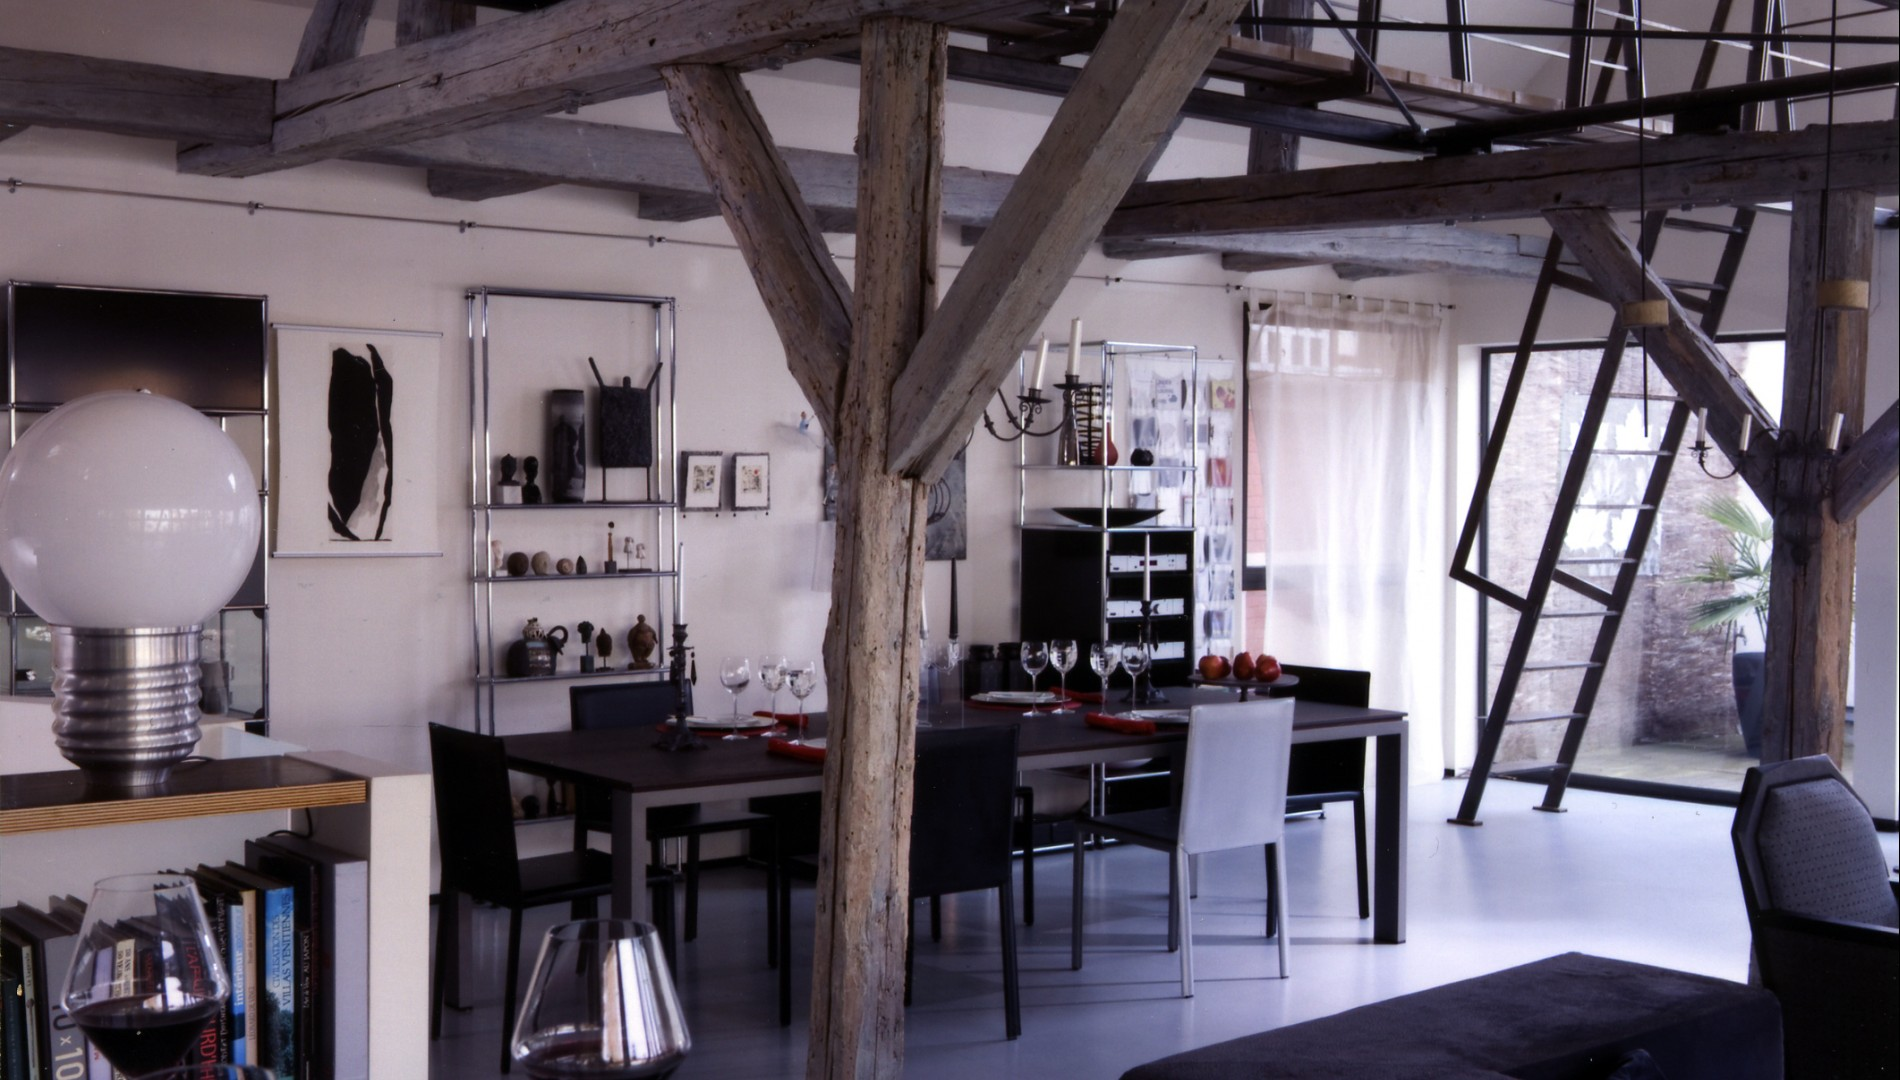 transformation d une d pendance en logement colmar knl architecte. Black Bedroom Furniture Sets. Home Design Ideas